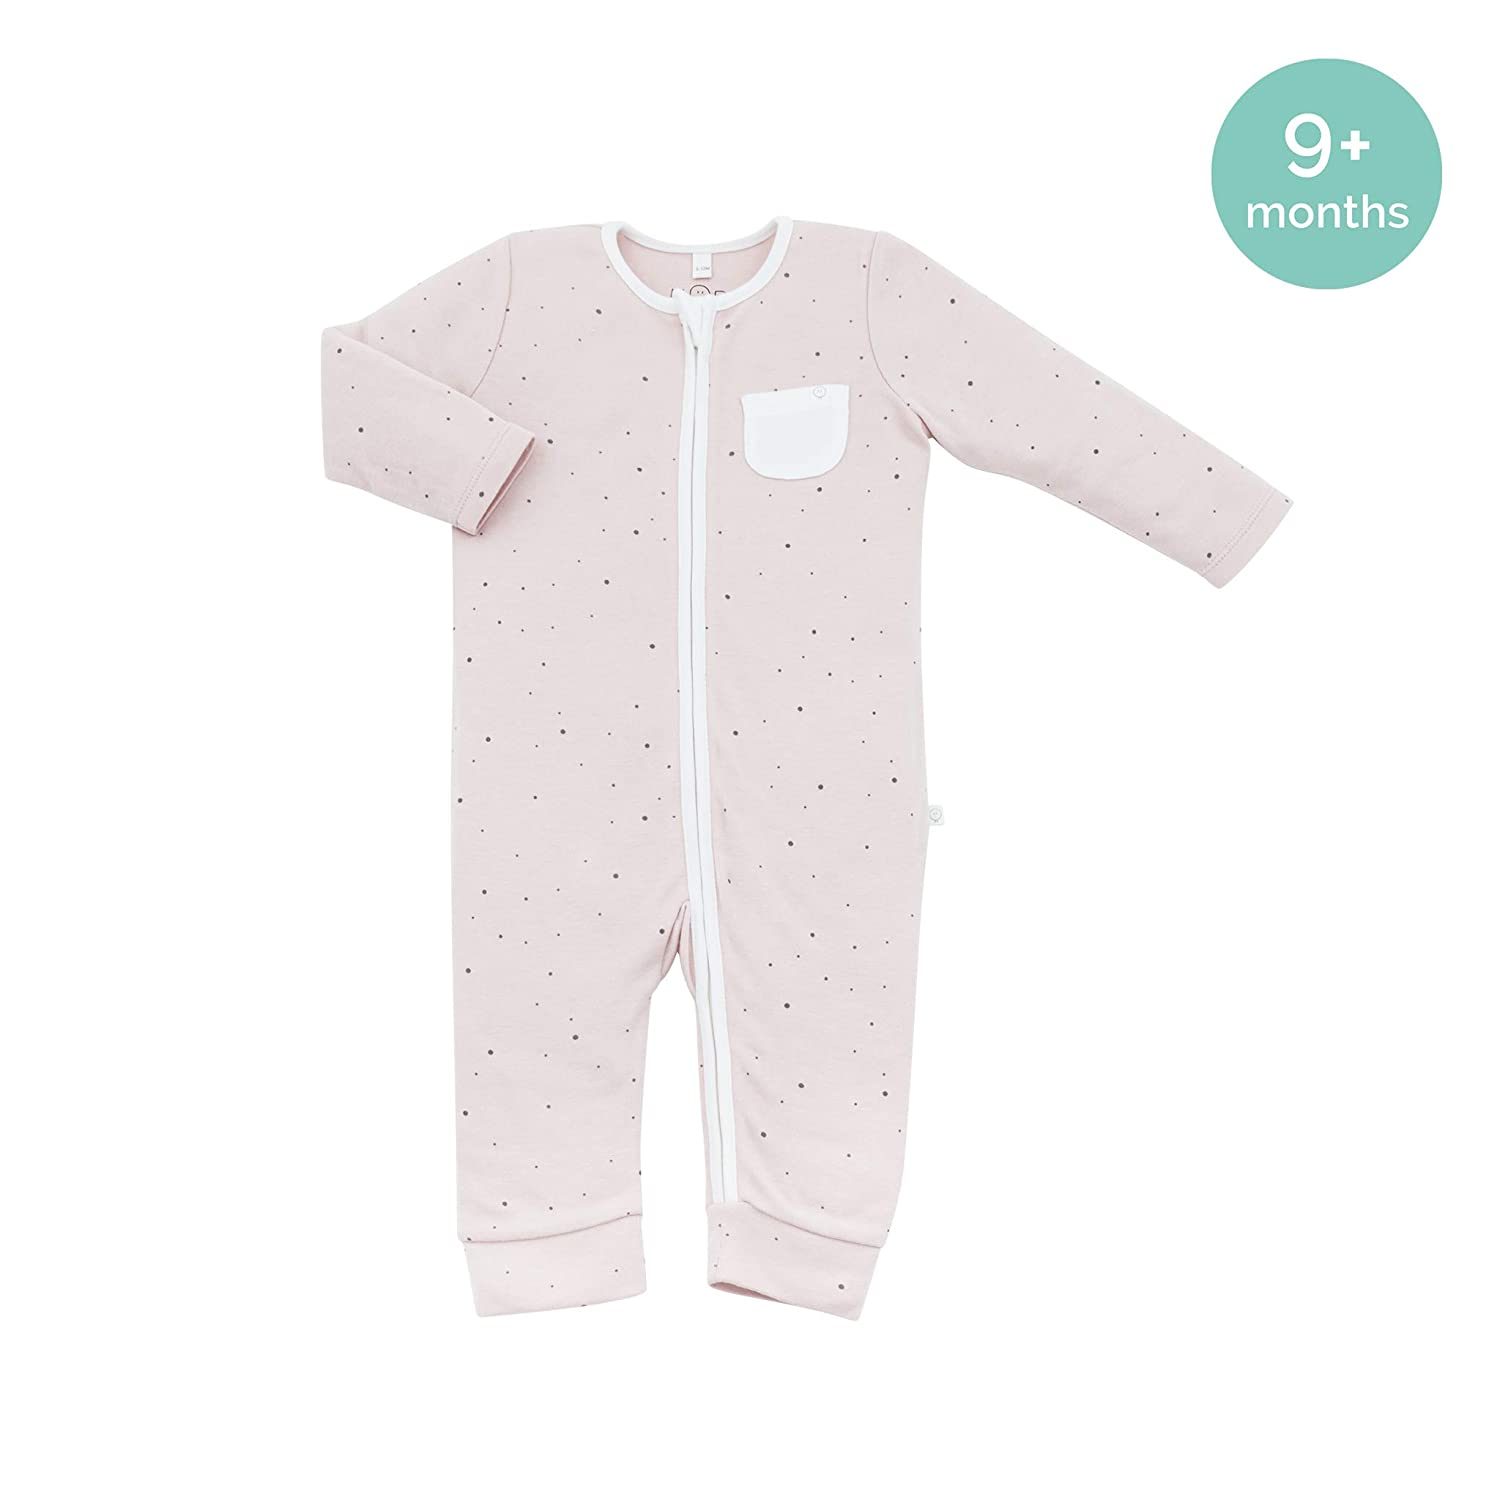 30/% Organic Cotton /& 70/% Bamboo available from newborn up to 2 years 0-3 Months, Stardust MORI Zip-Up Sleepsuit